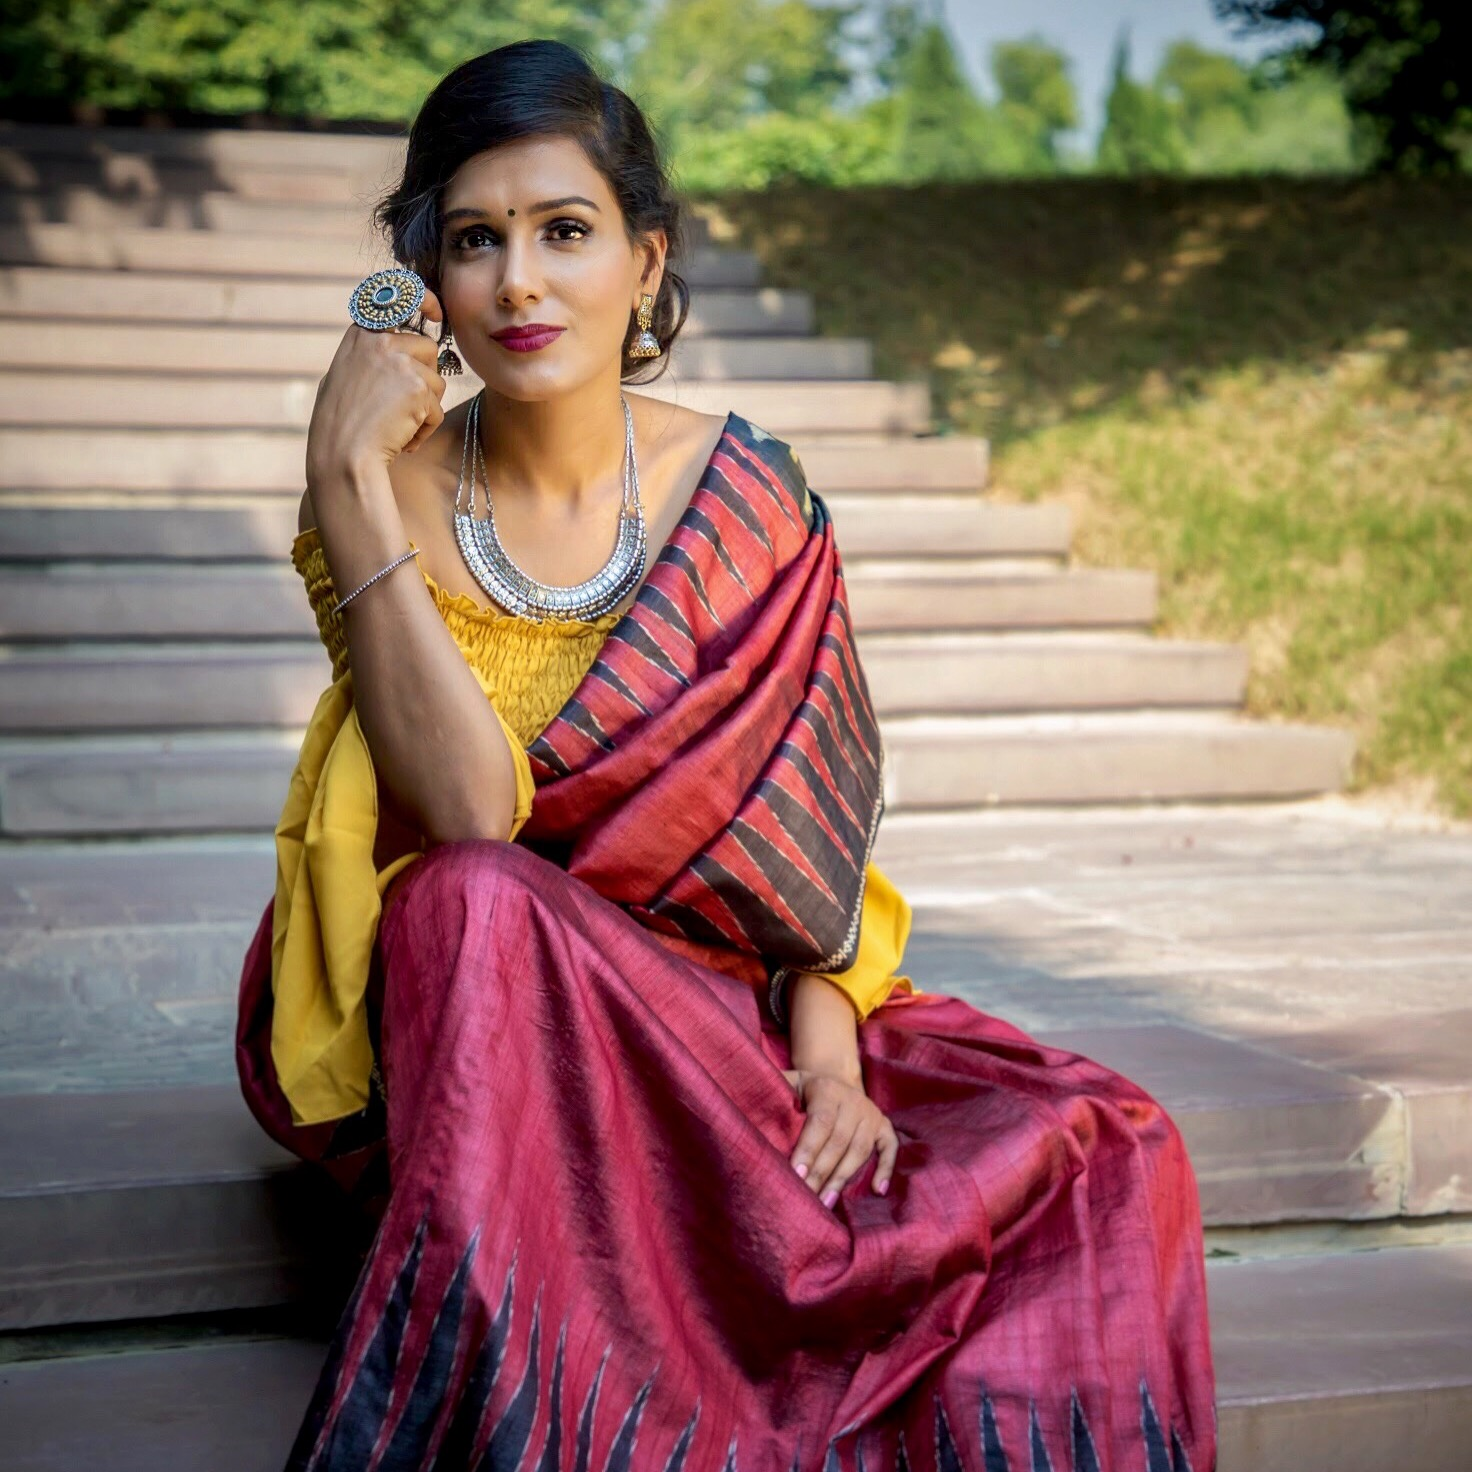 Styling Tips For Diwali By Ms. Archana Dhankar